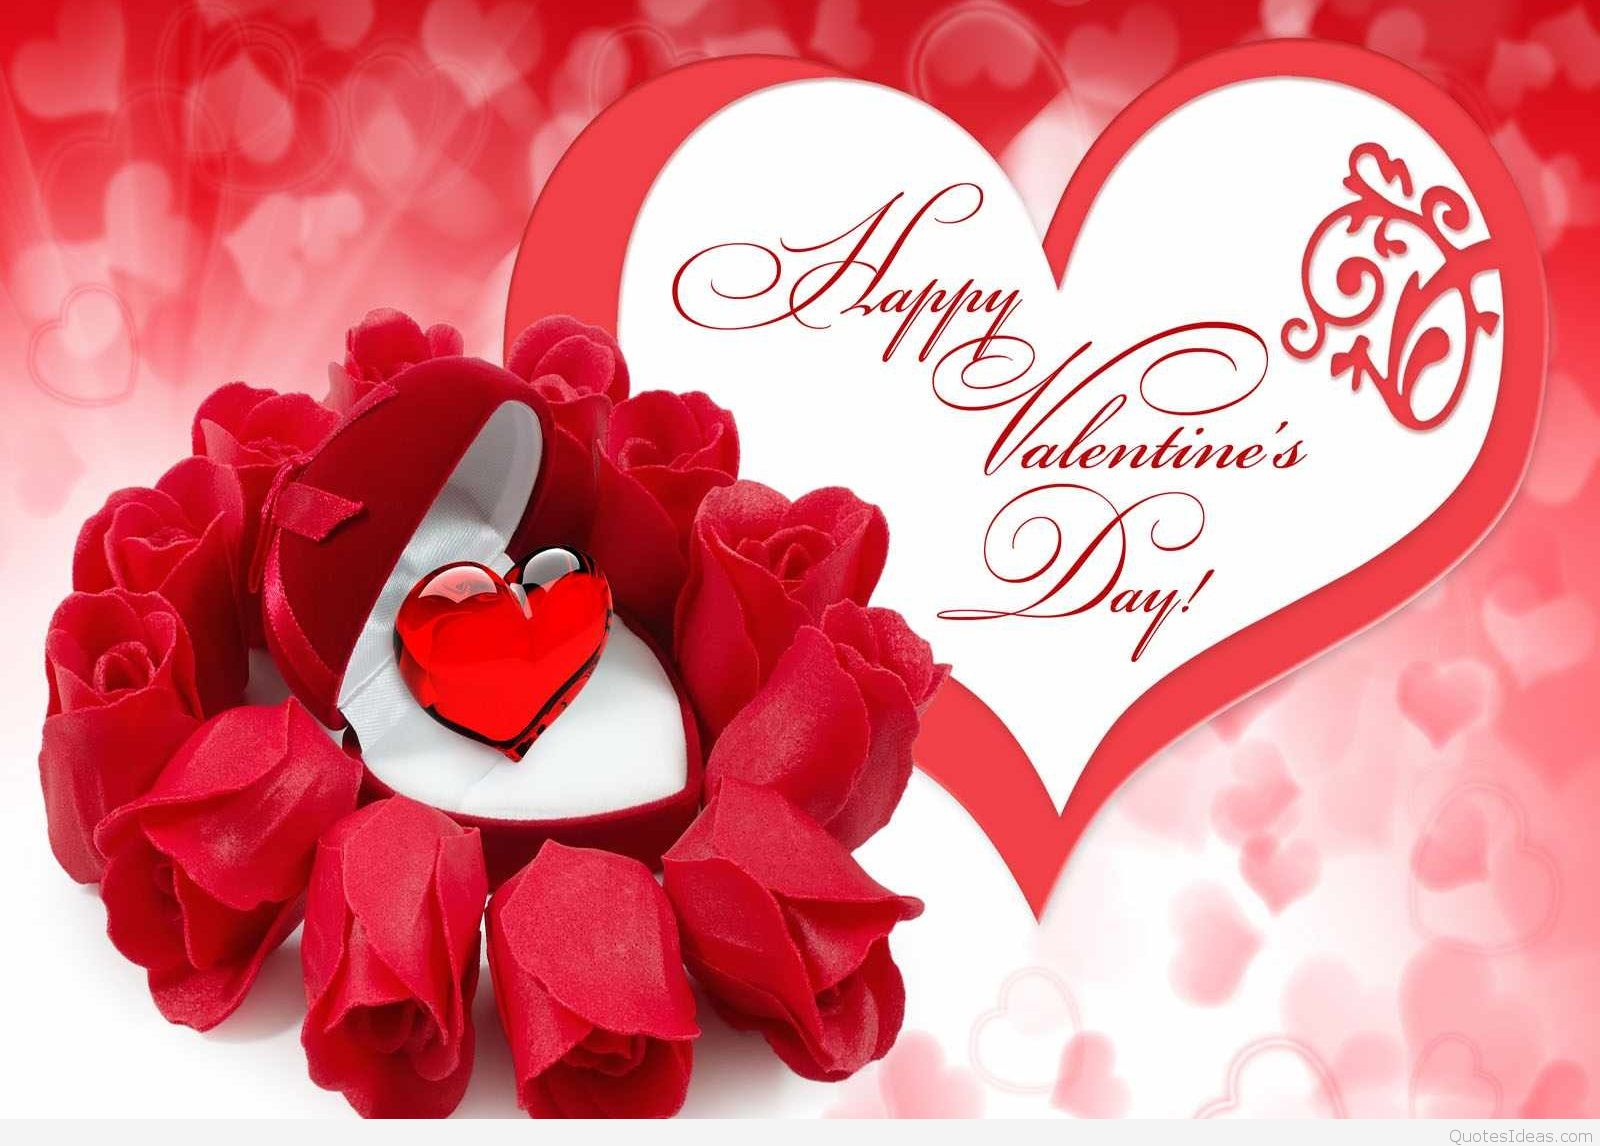 Valentine's day Images and wallpapers